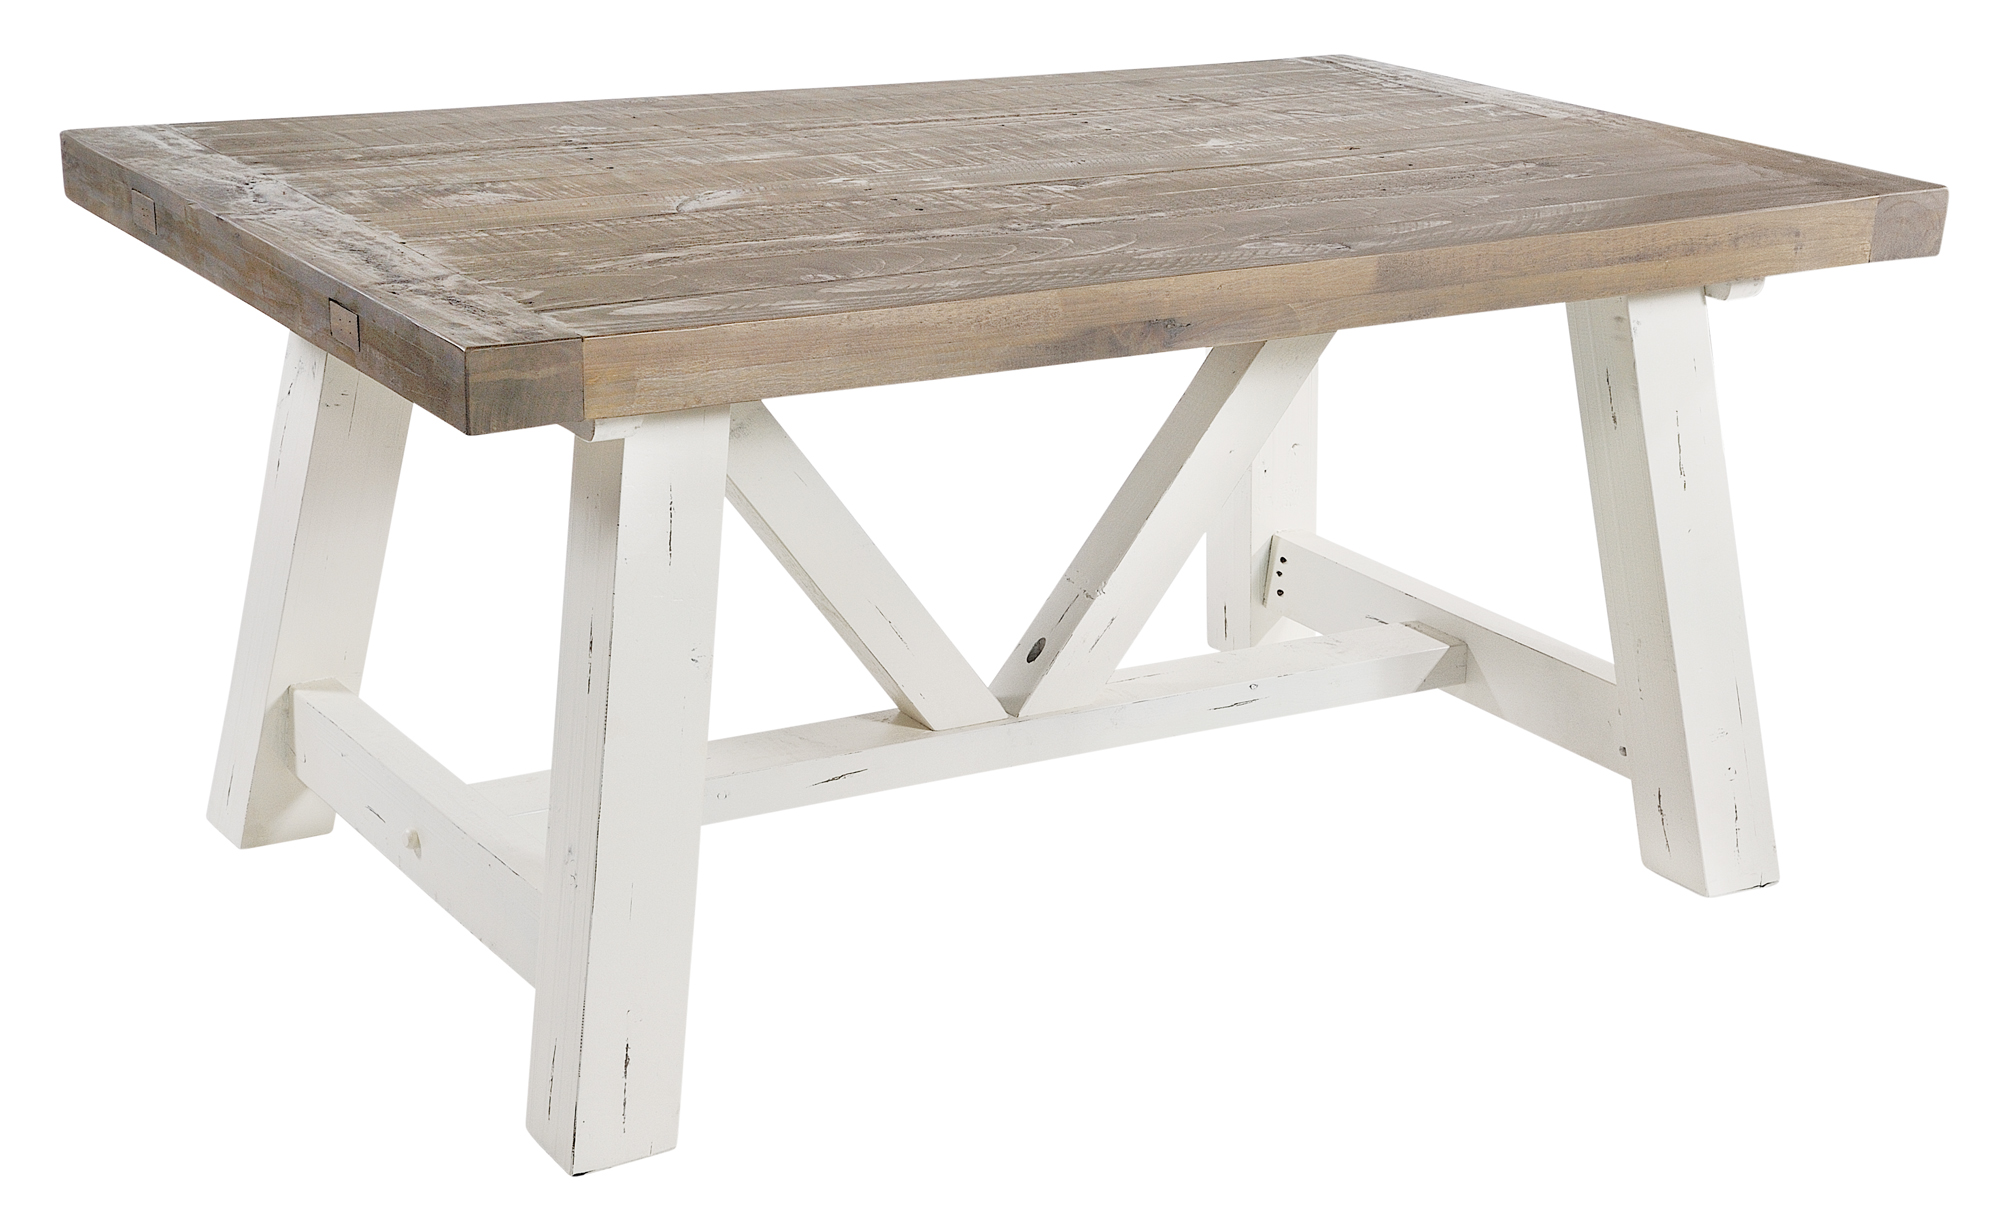 Solid reclaimed wood extendable dining table  sc 1 st  Scape Interiors West Ltd & Solid reclaimed wood dining table \u2013 Scape Interiors West Ltd